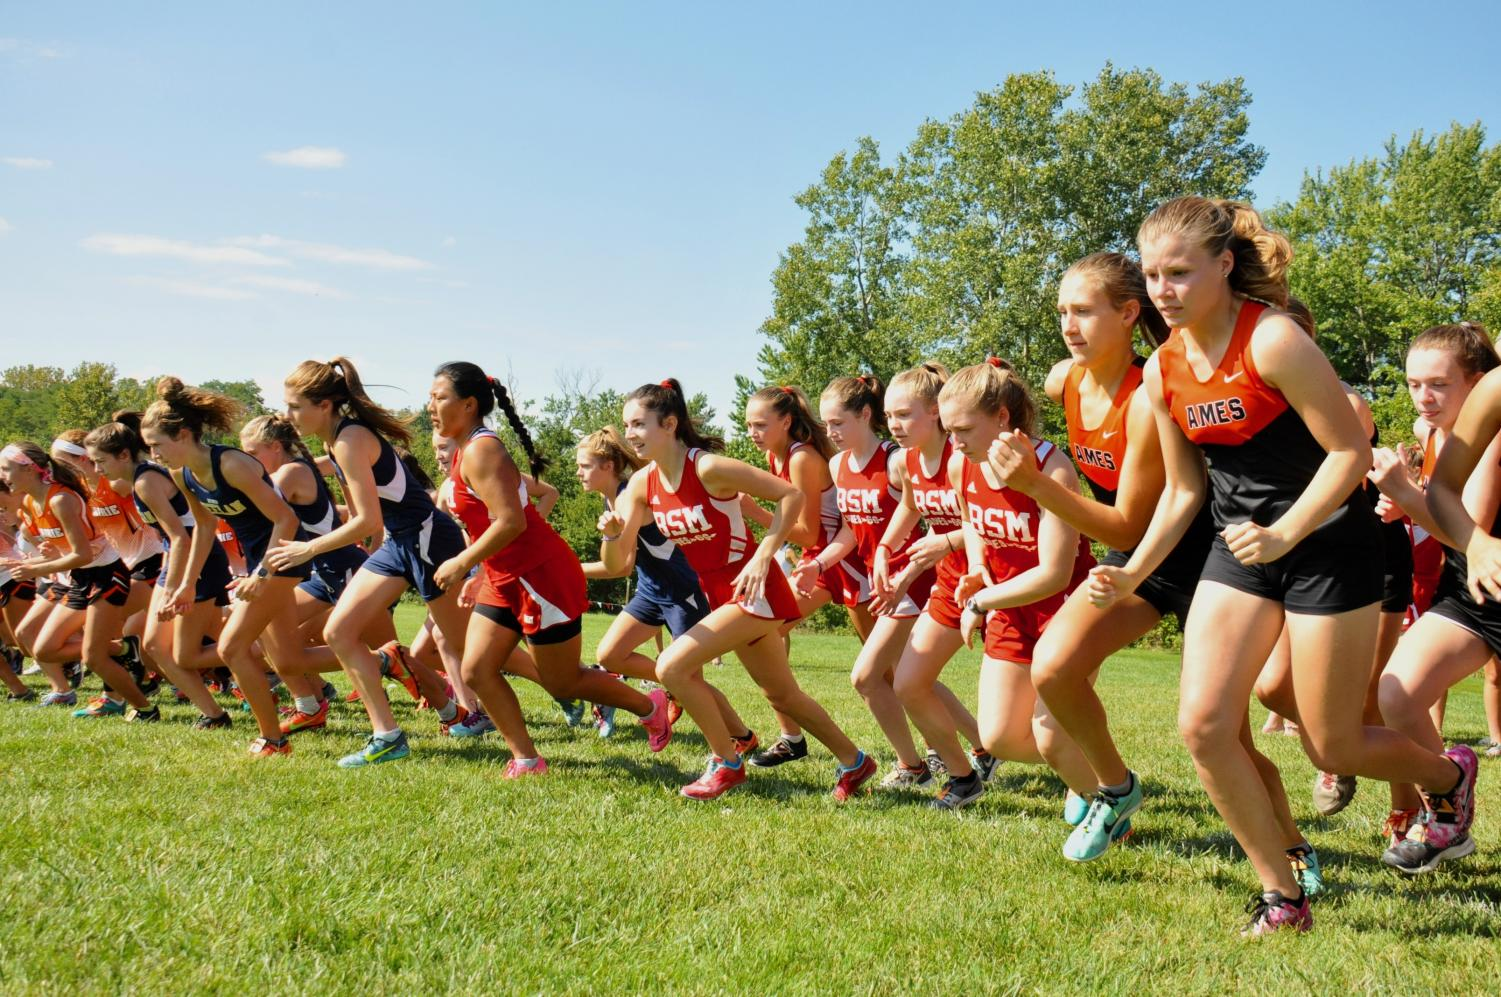 Girls' cross country aims for victory this year through team building and  working hard.